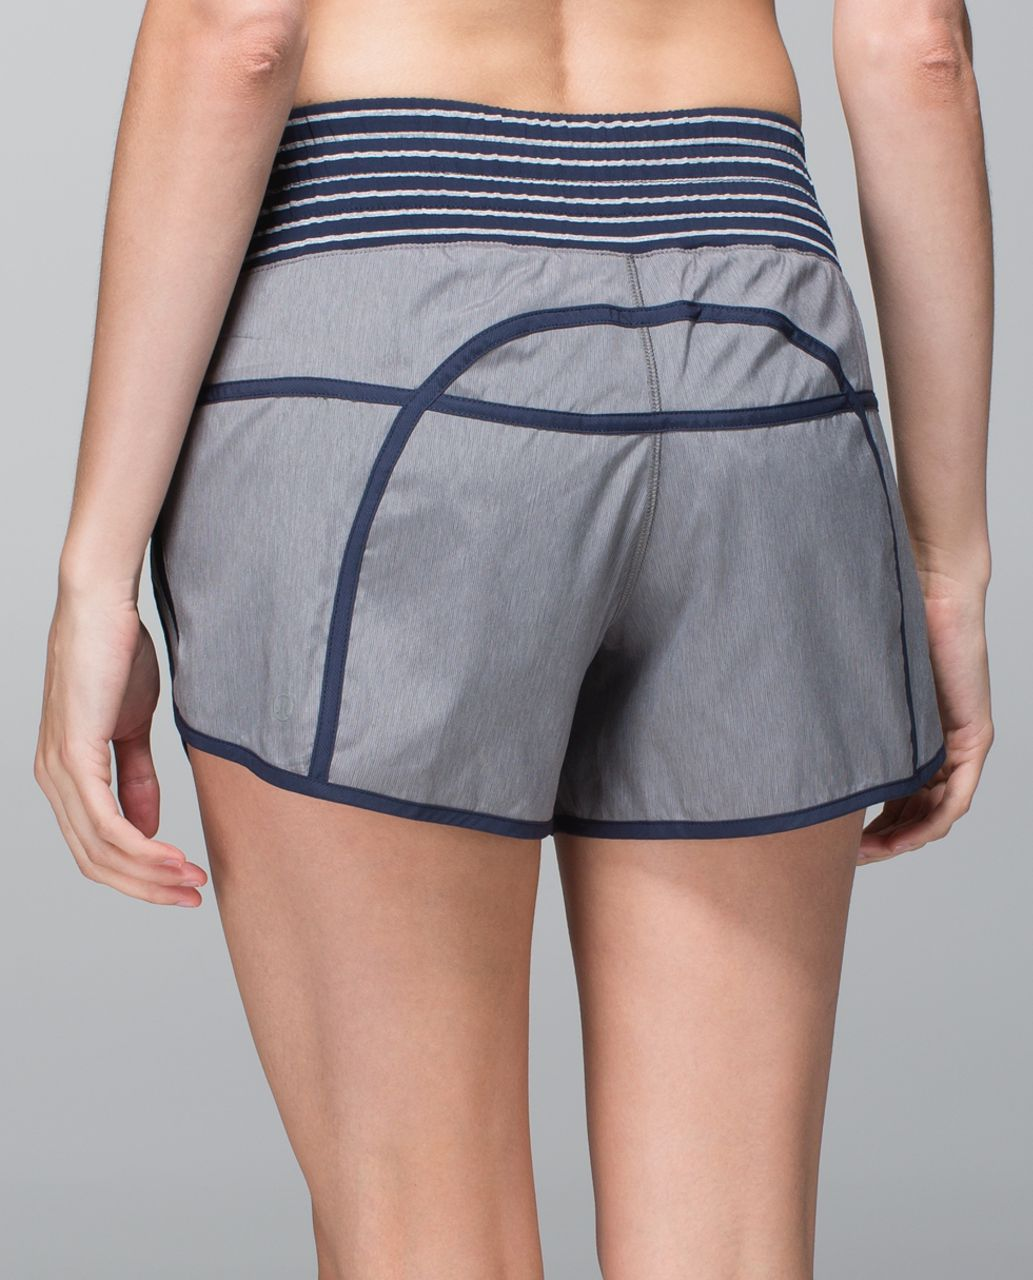 Lululemon Tracker Short II *4-way Stretch - Heathered Slate / Inkwell / West2east Stripe Inkwell Heathered Medium Grey